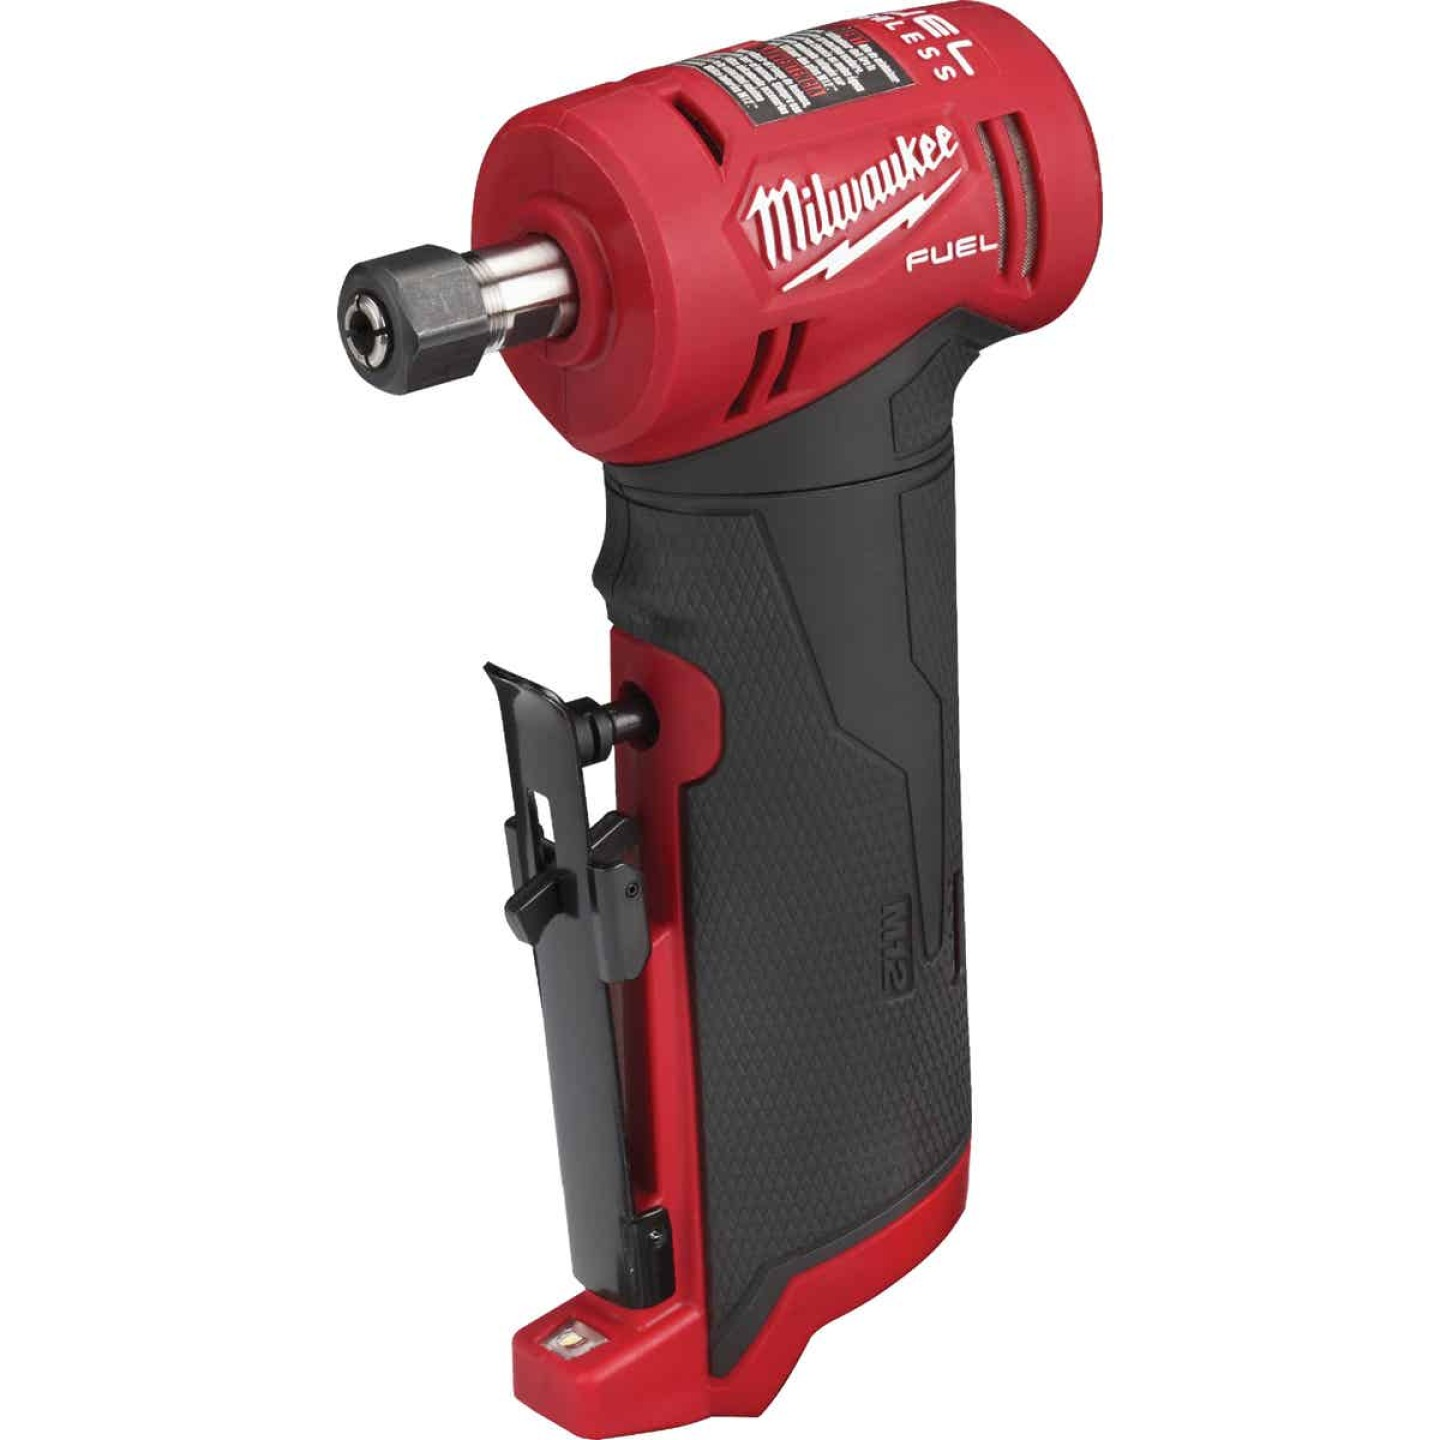 Milwaukee M12 FUEL 12 Volt Lithium-Ion Brushless 1/4 In. Right Angle Cordless Die Grinder (Bare Tool) Image 1